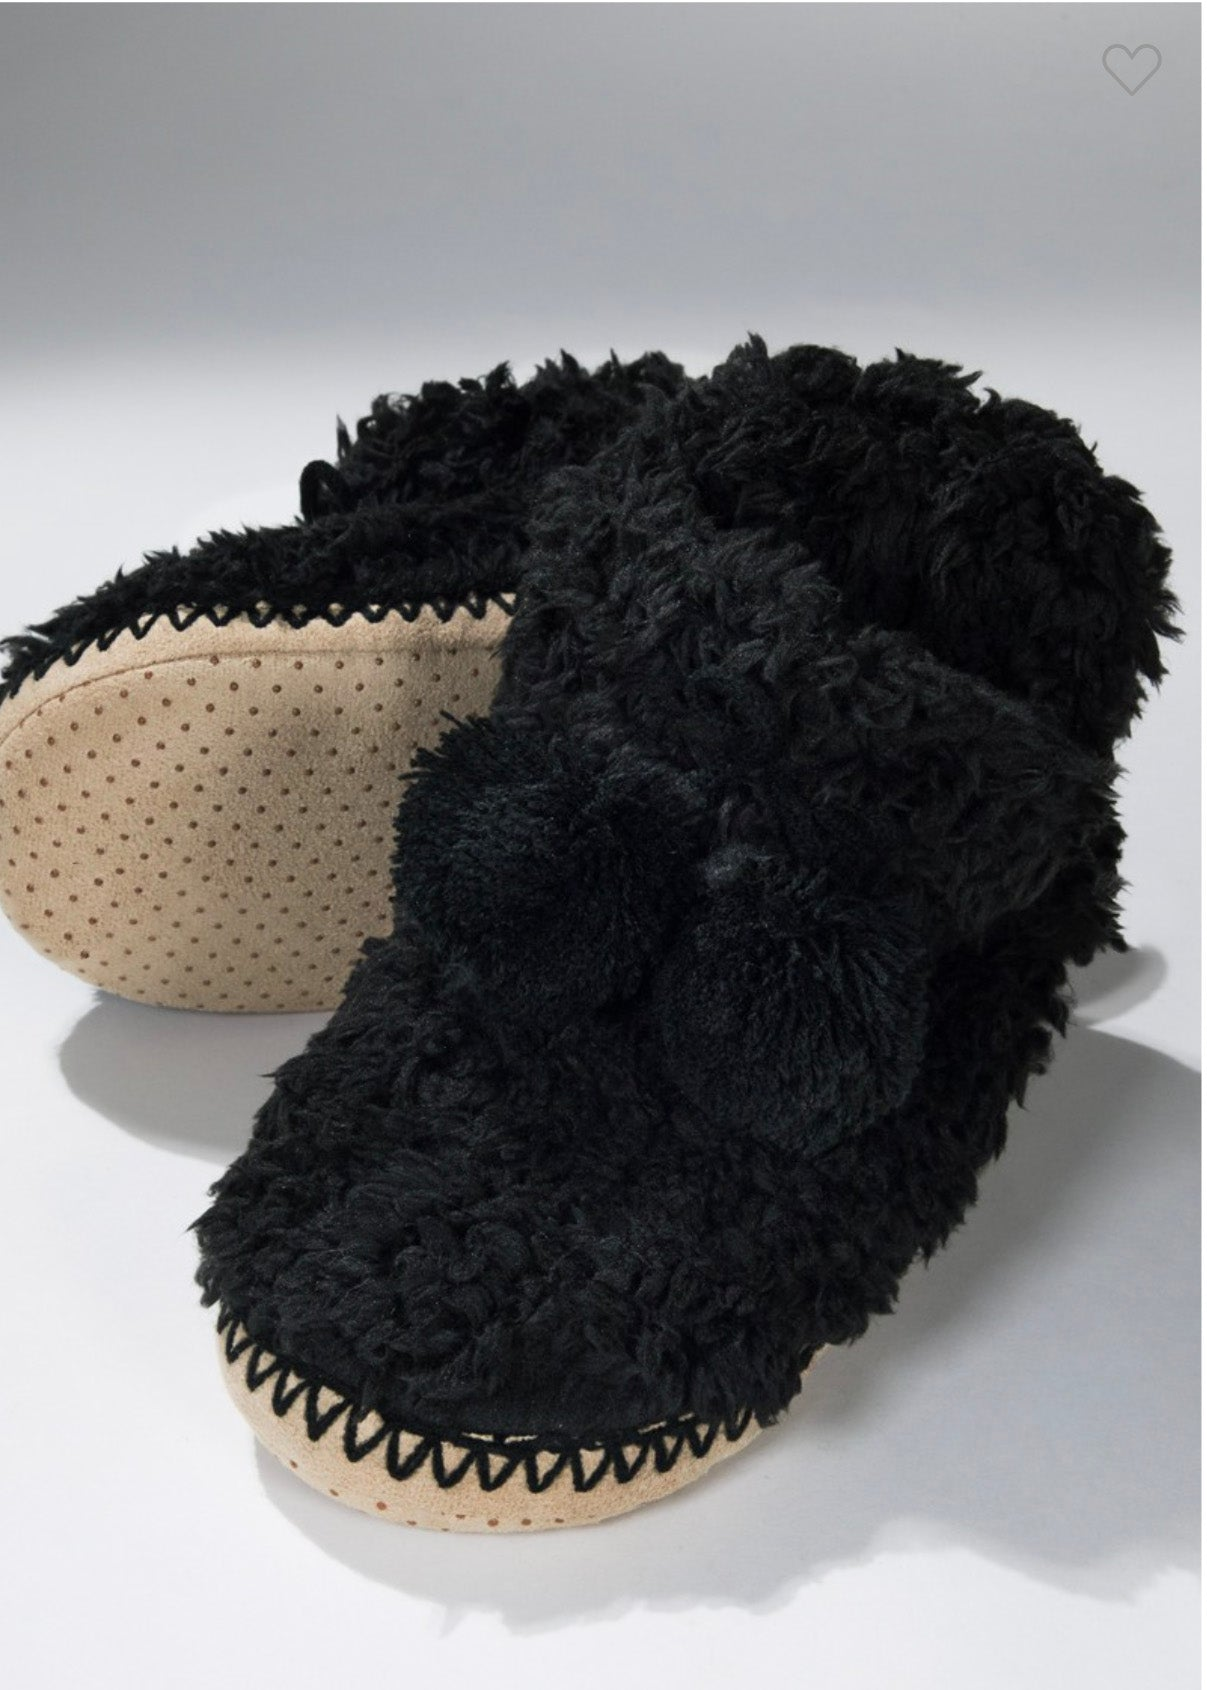 Black Faux Fur Bootie Slippers - FINAL SALE